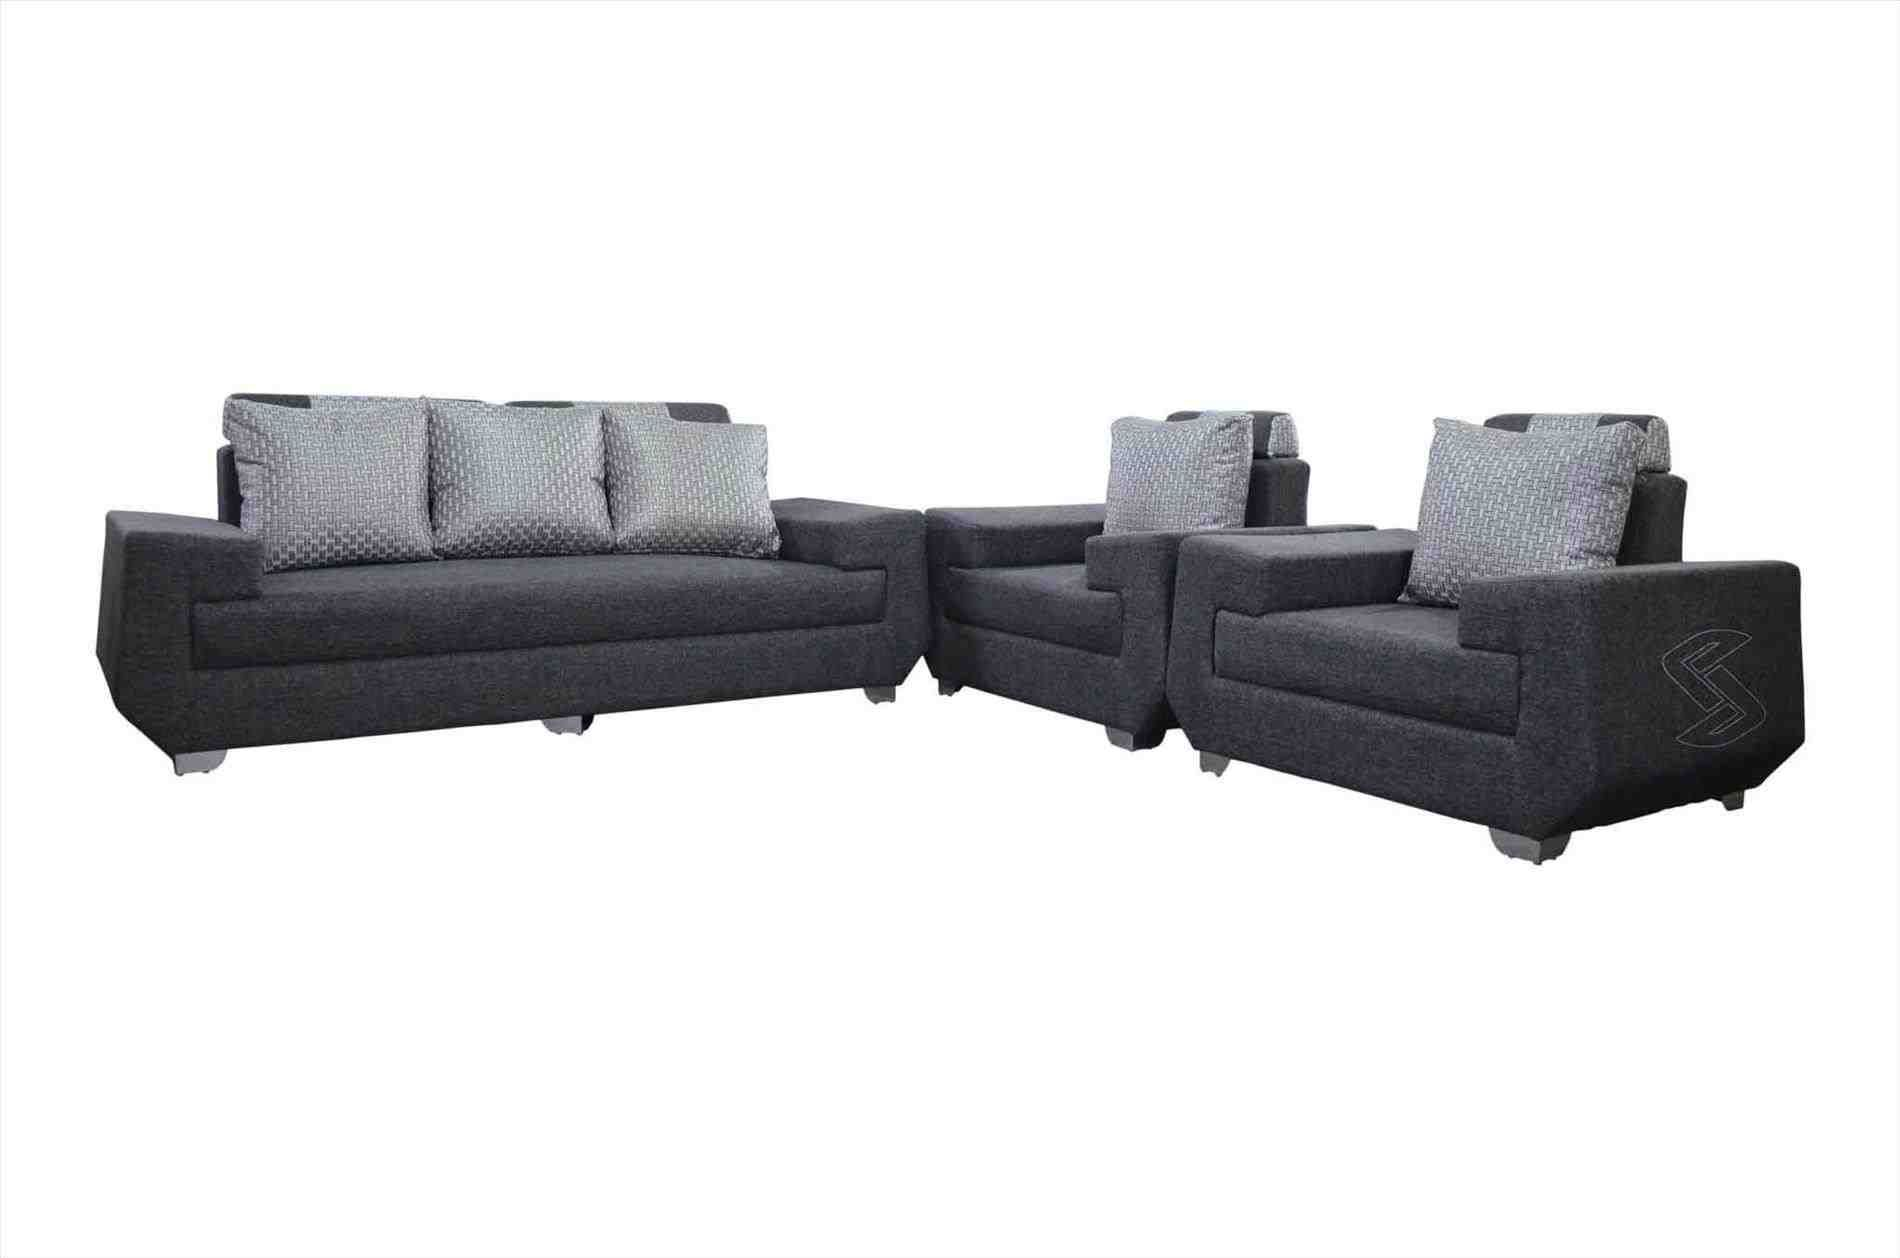 Buy Furniture Online In Hyderabad Sofa Sets For Living Room Set Designs Small Online Design In India Philippines Hy Cheap Sofa Sets Sofa Set Online Furniture